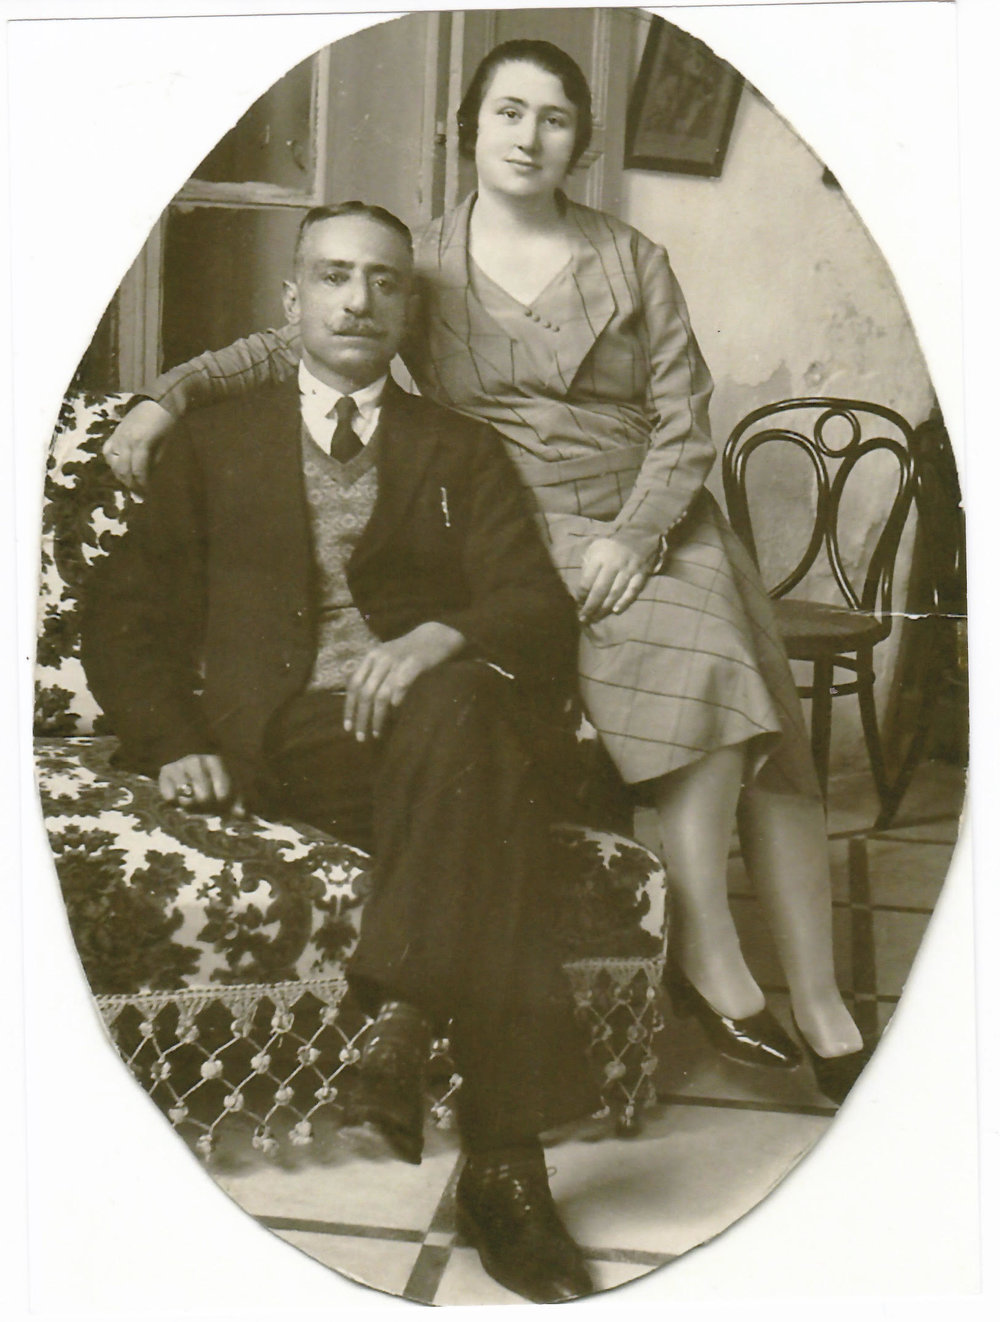 Naim and Aniseh Cotran. Acre, February 30, 1930, Family Papers